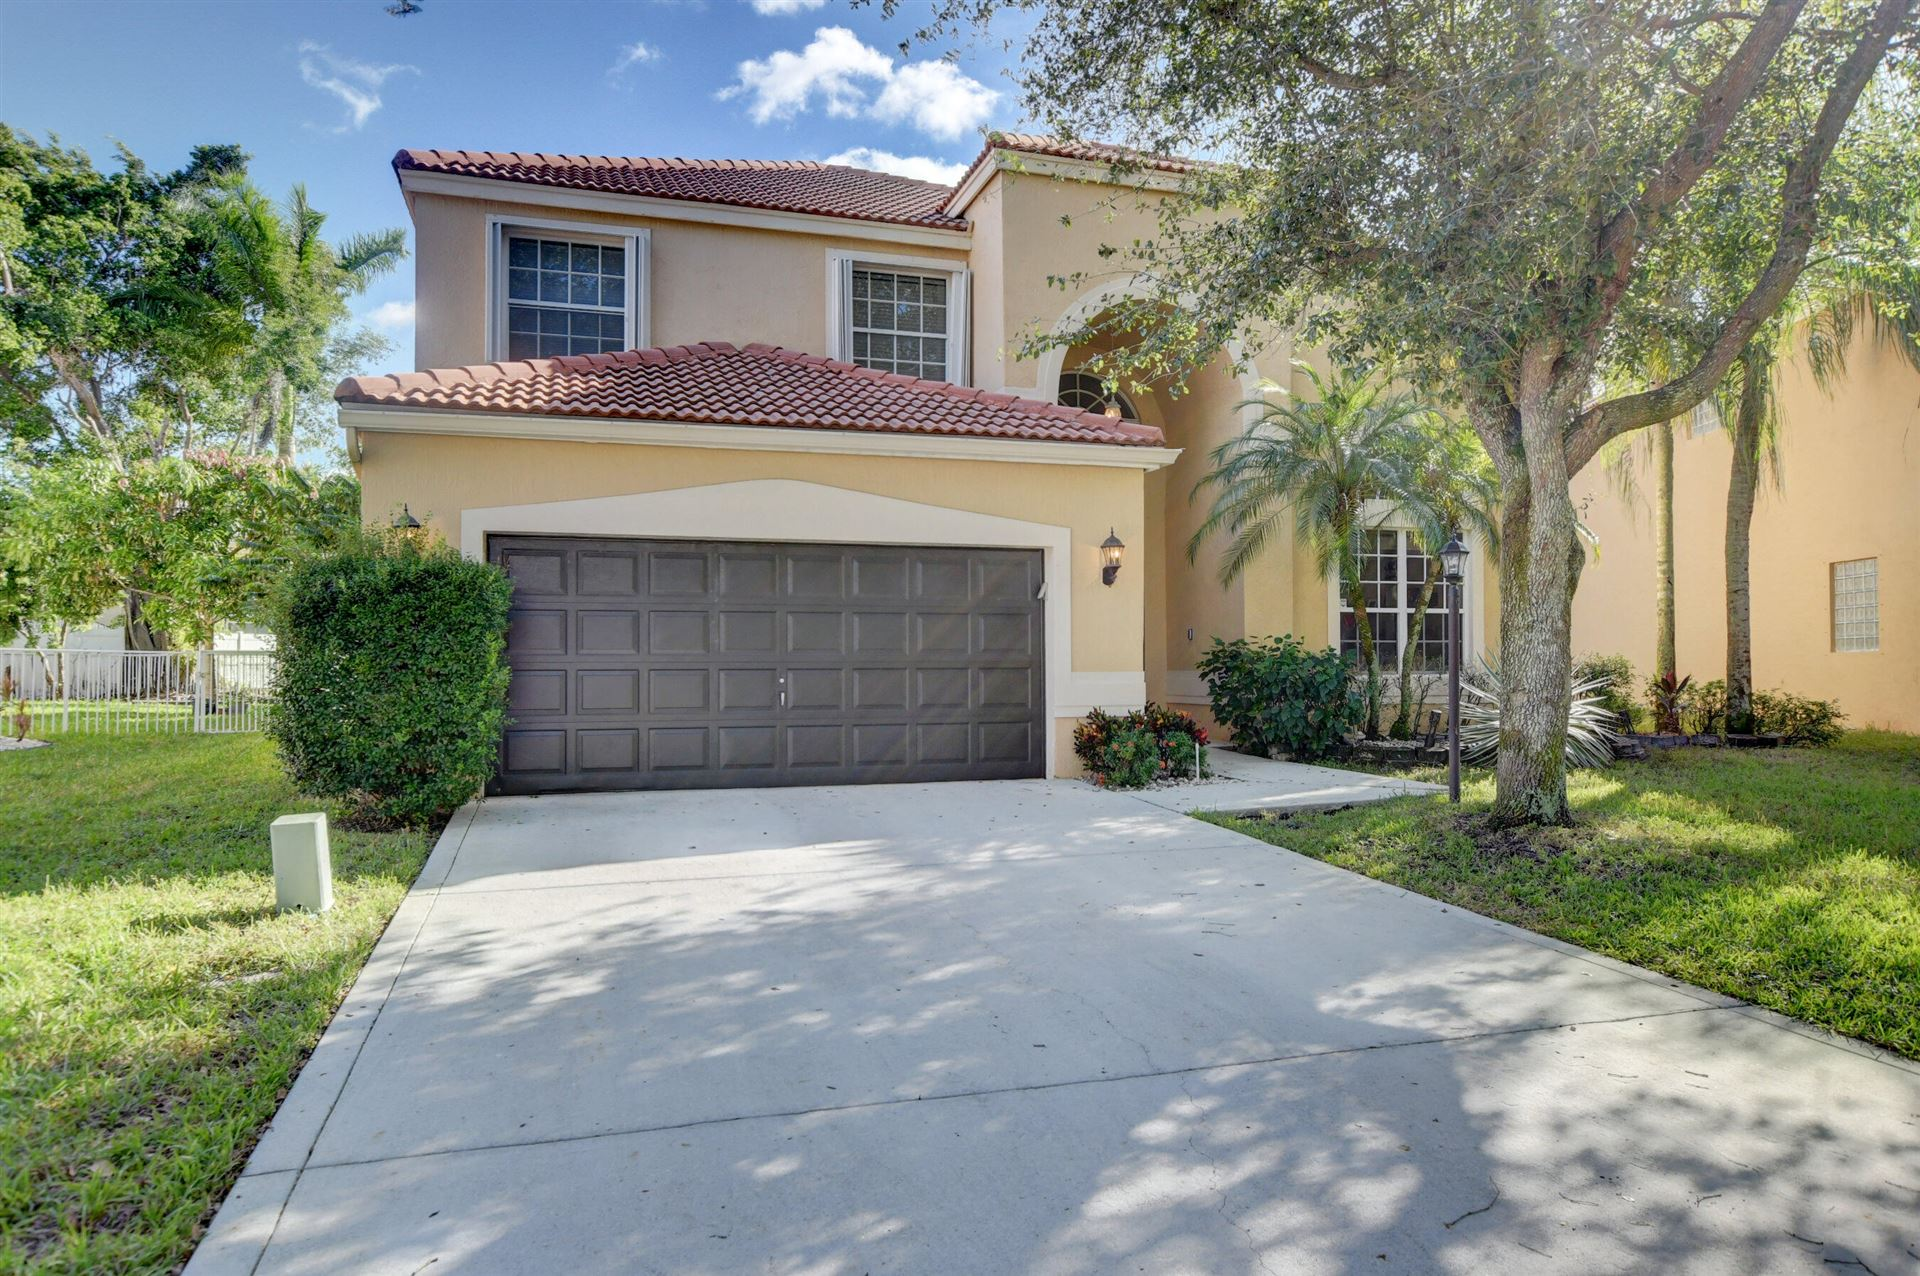 Photo of 7894 NW 63rd Way, Parkland, FL 33067 (MLS # RX-10753336)